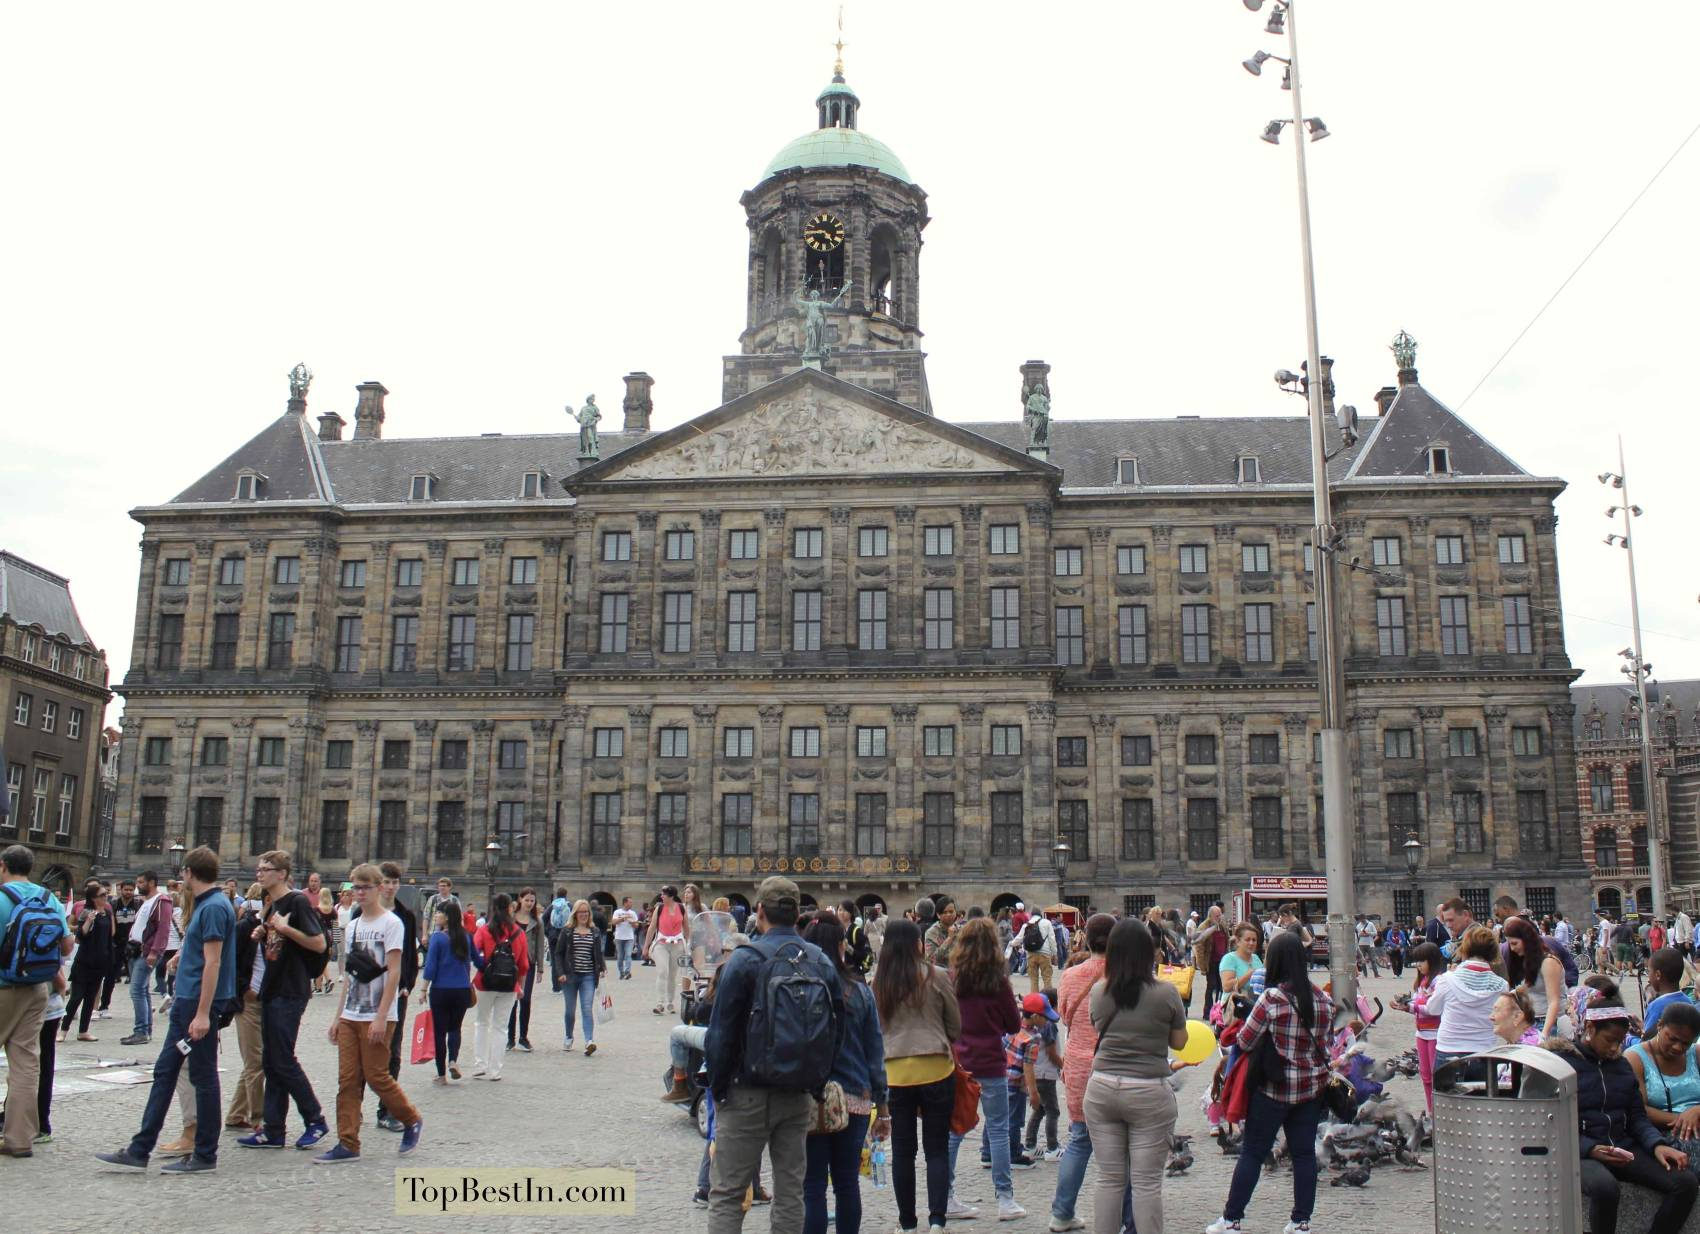 Royal Palace Amsterdam (1)